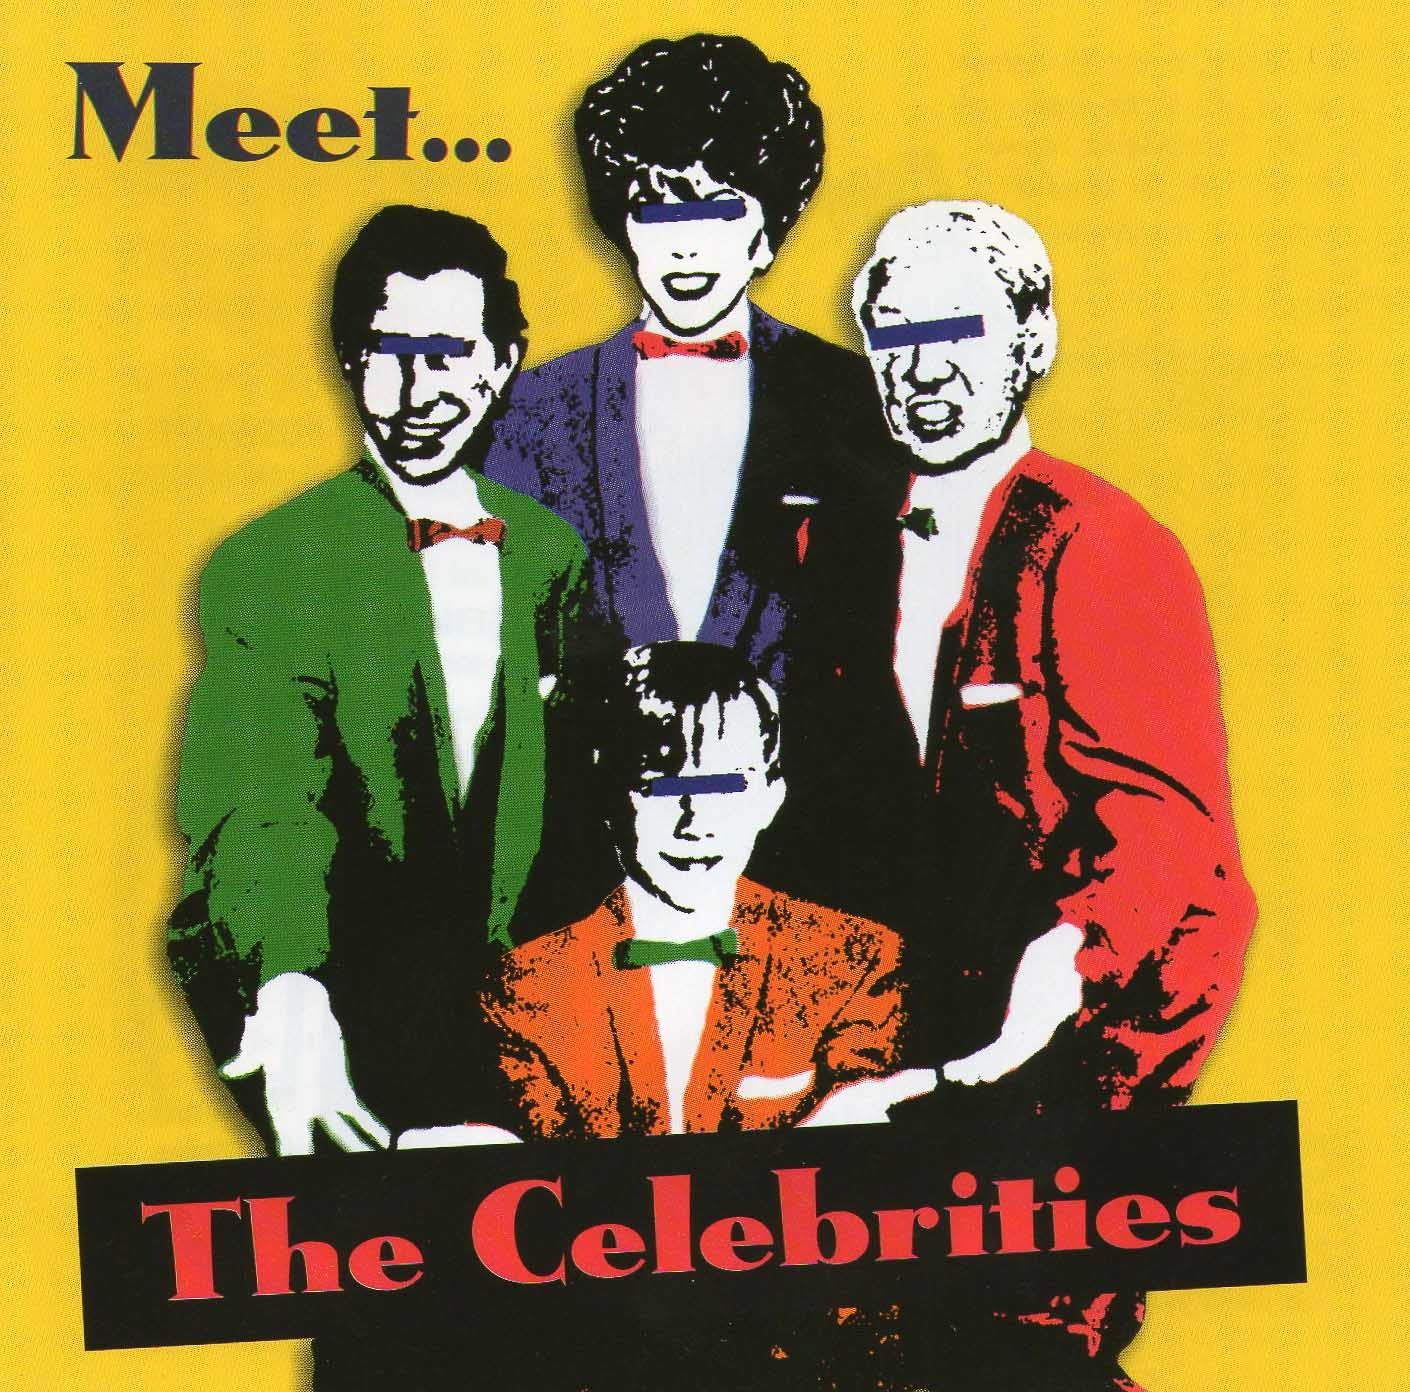 Album cover art from  '   Meet... The Celebrities'  available on the Thong 'n' Dance label.